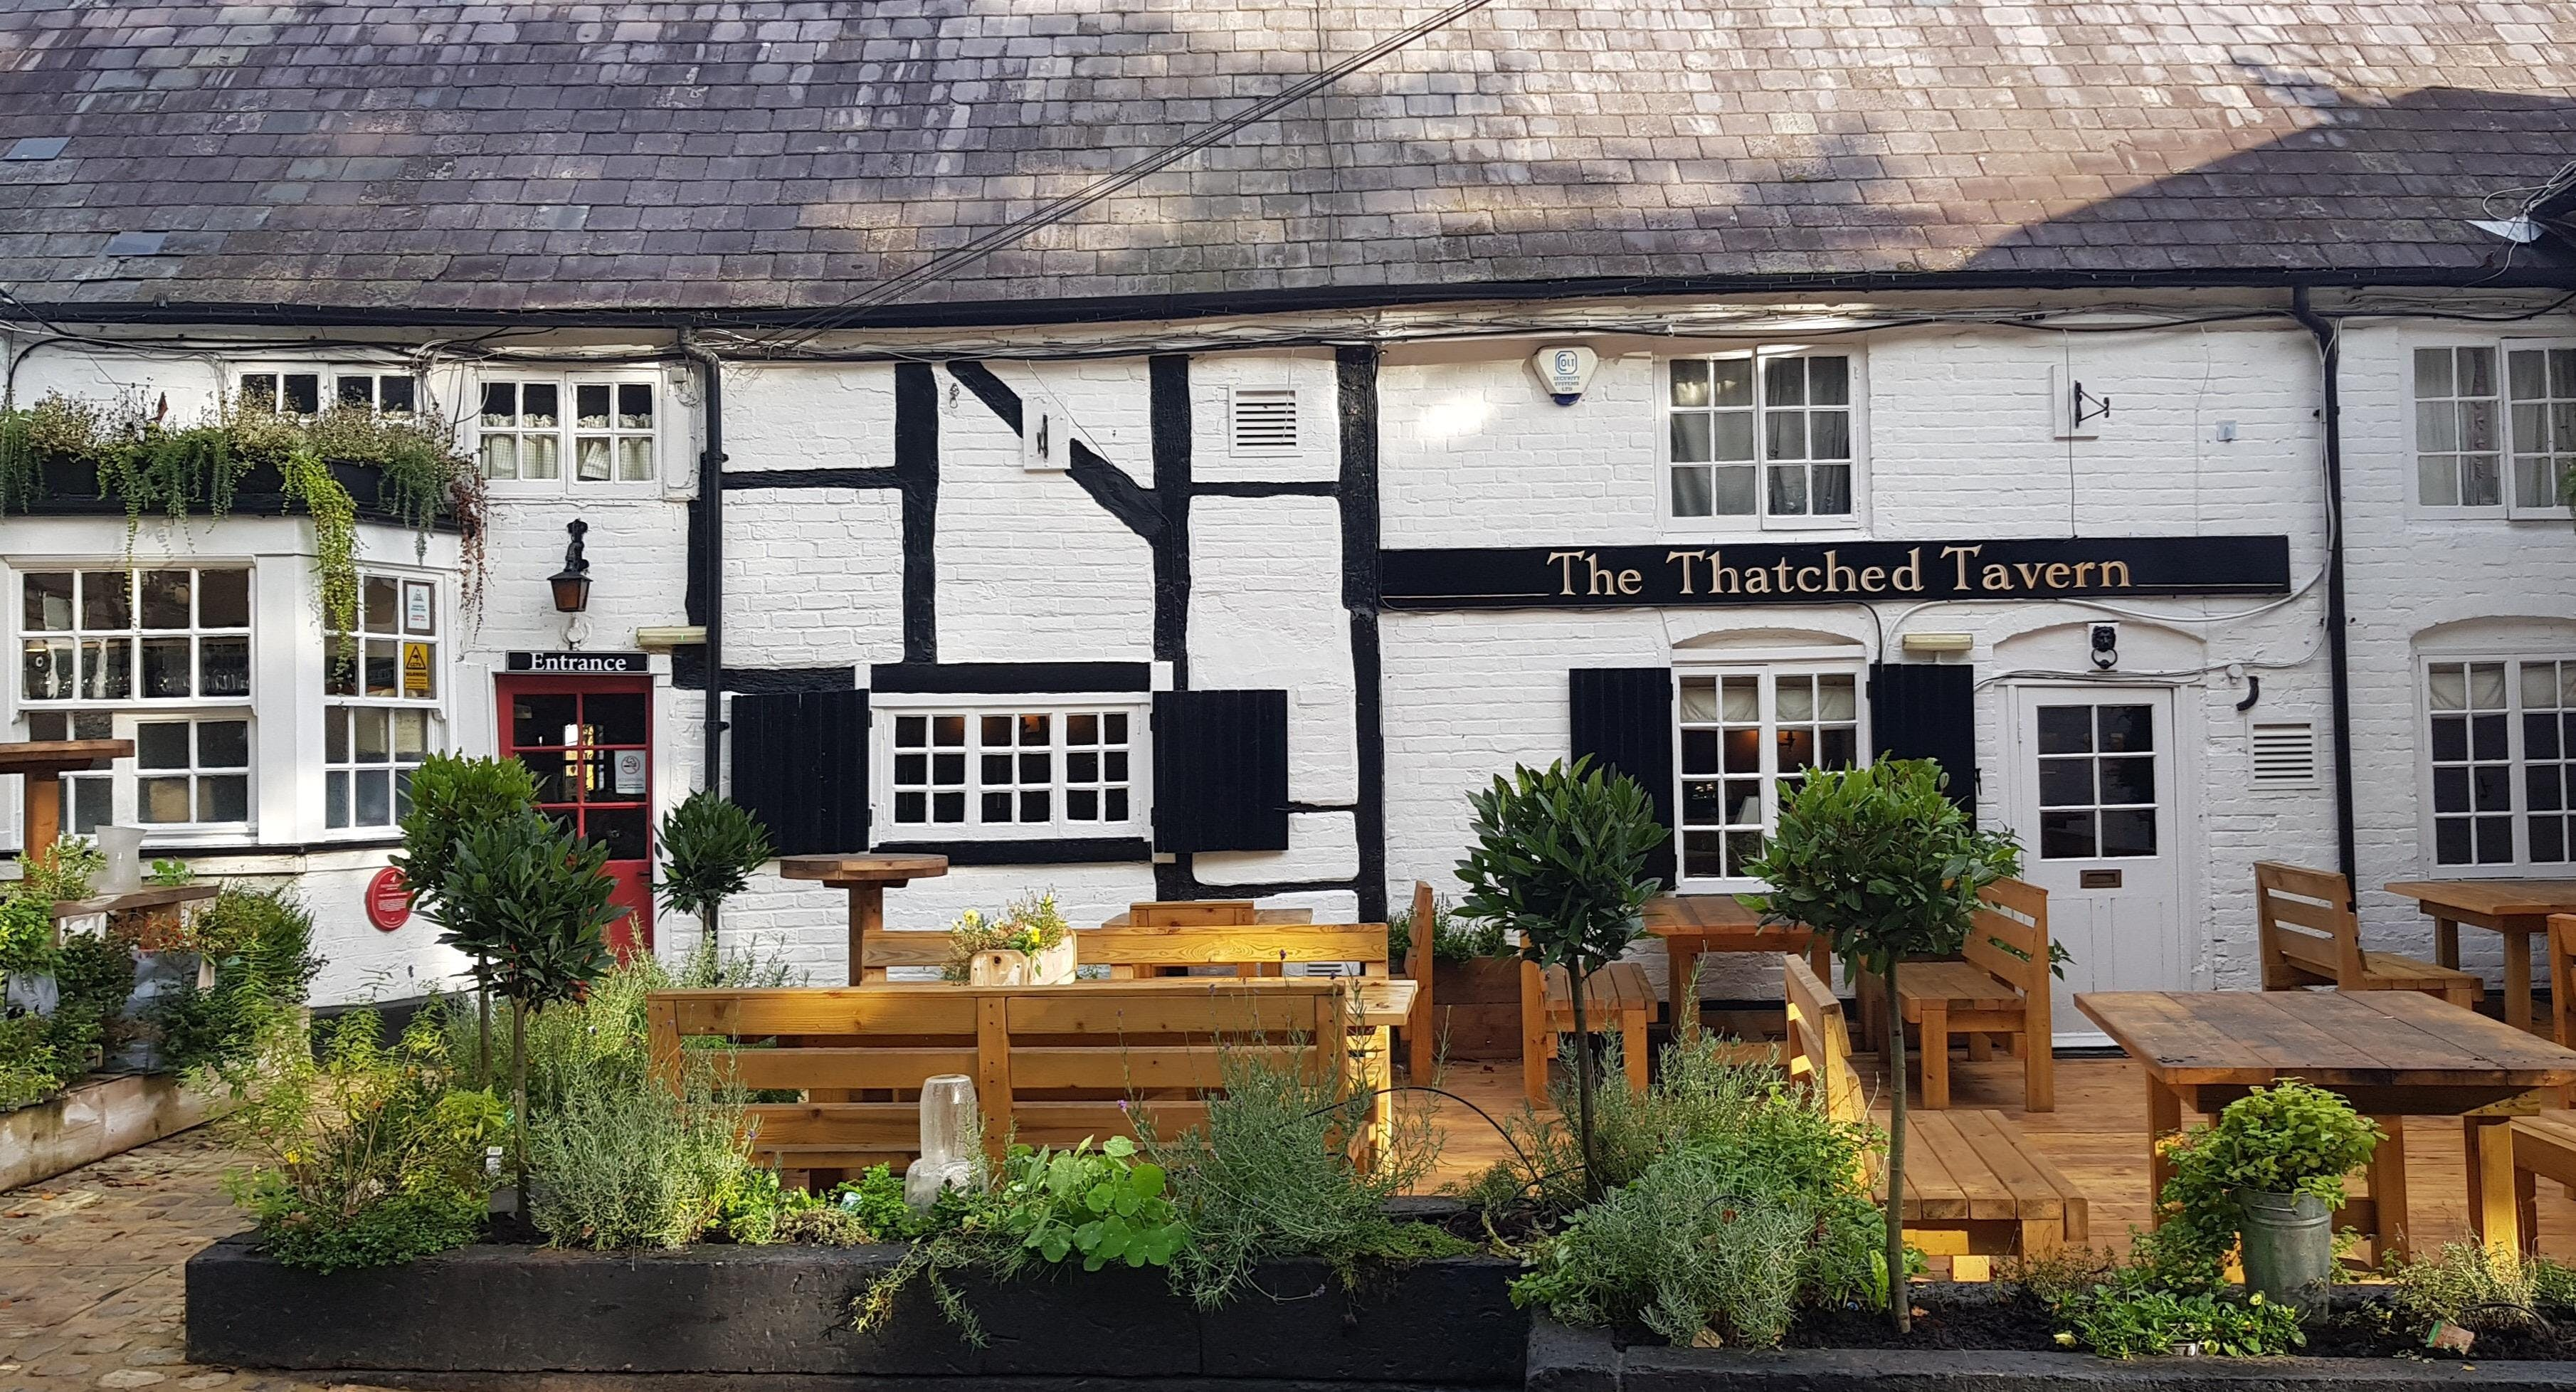 The Thatched Tavern Ascot image 1